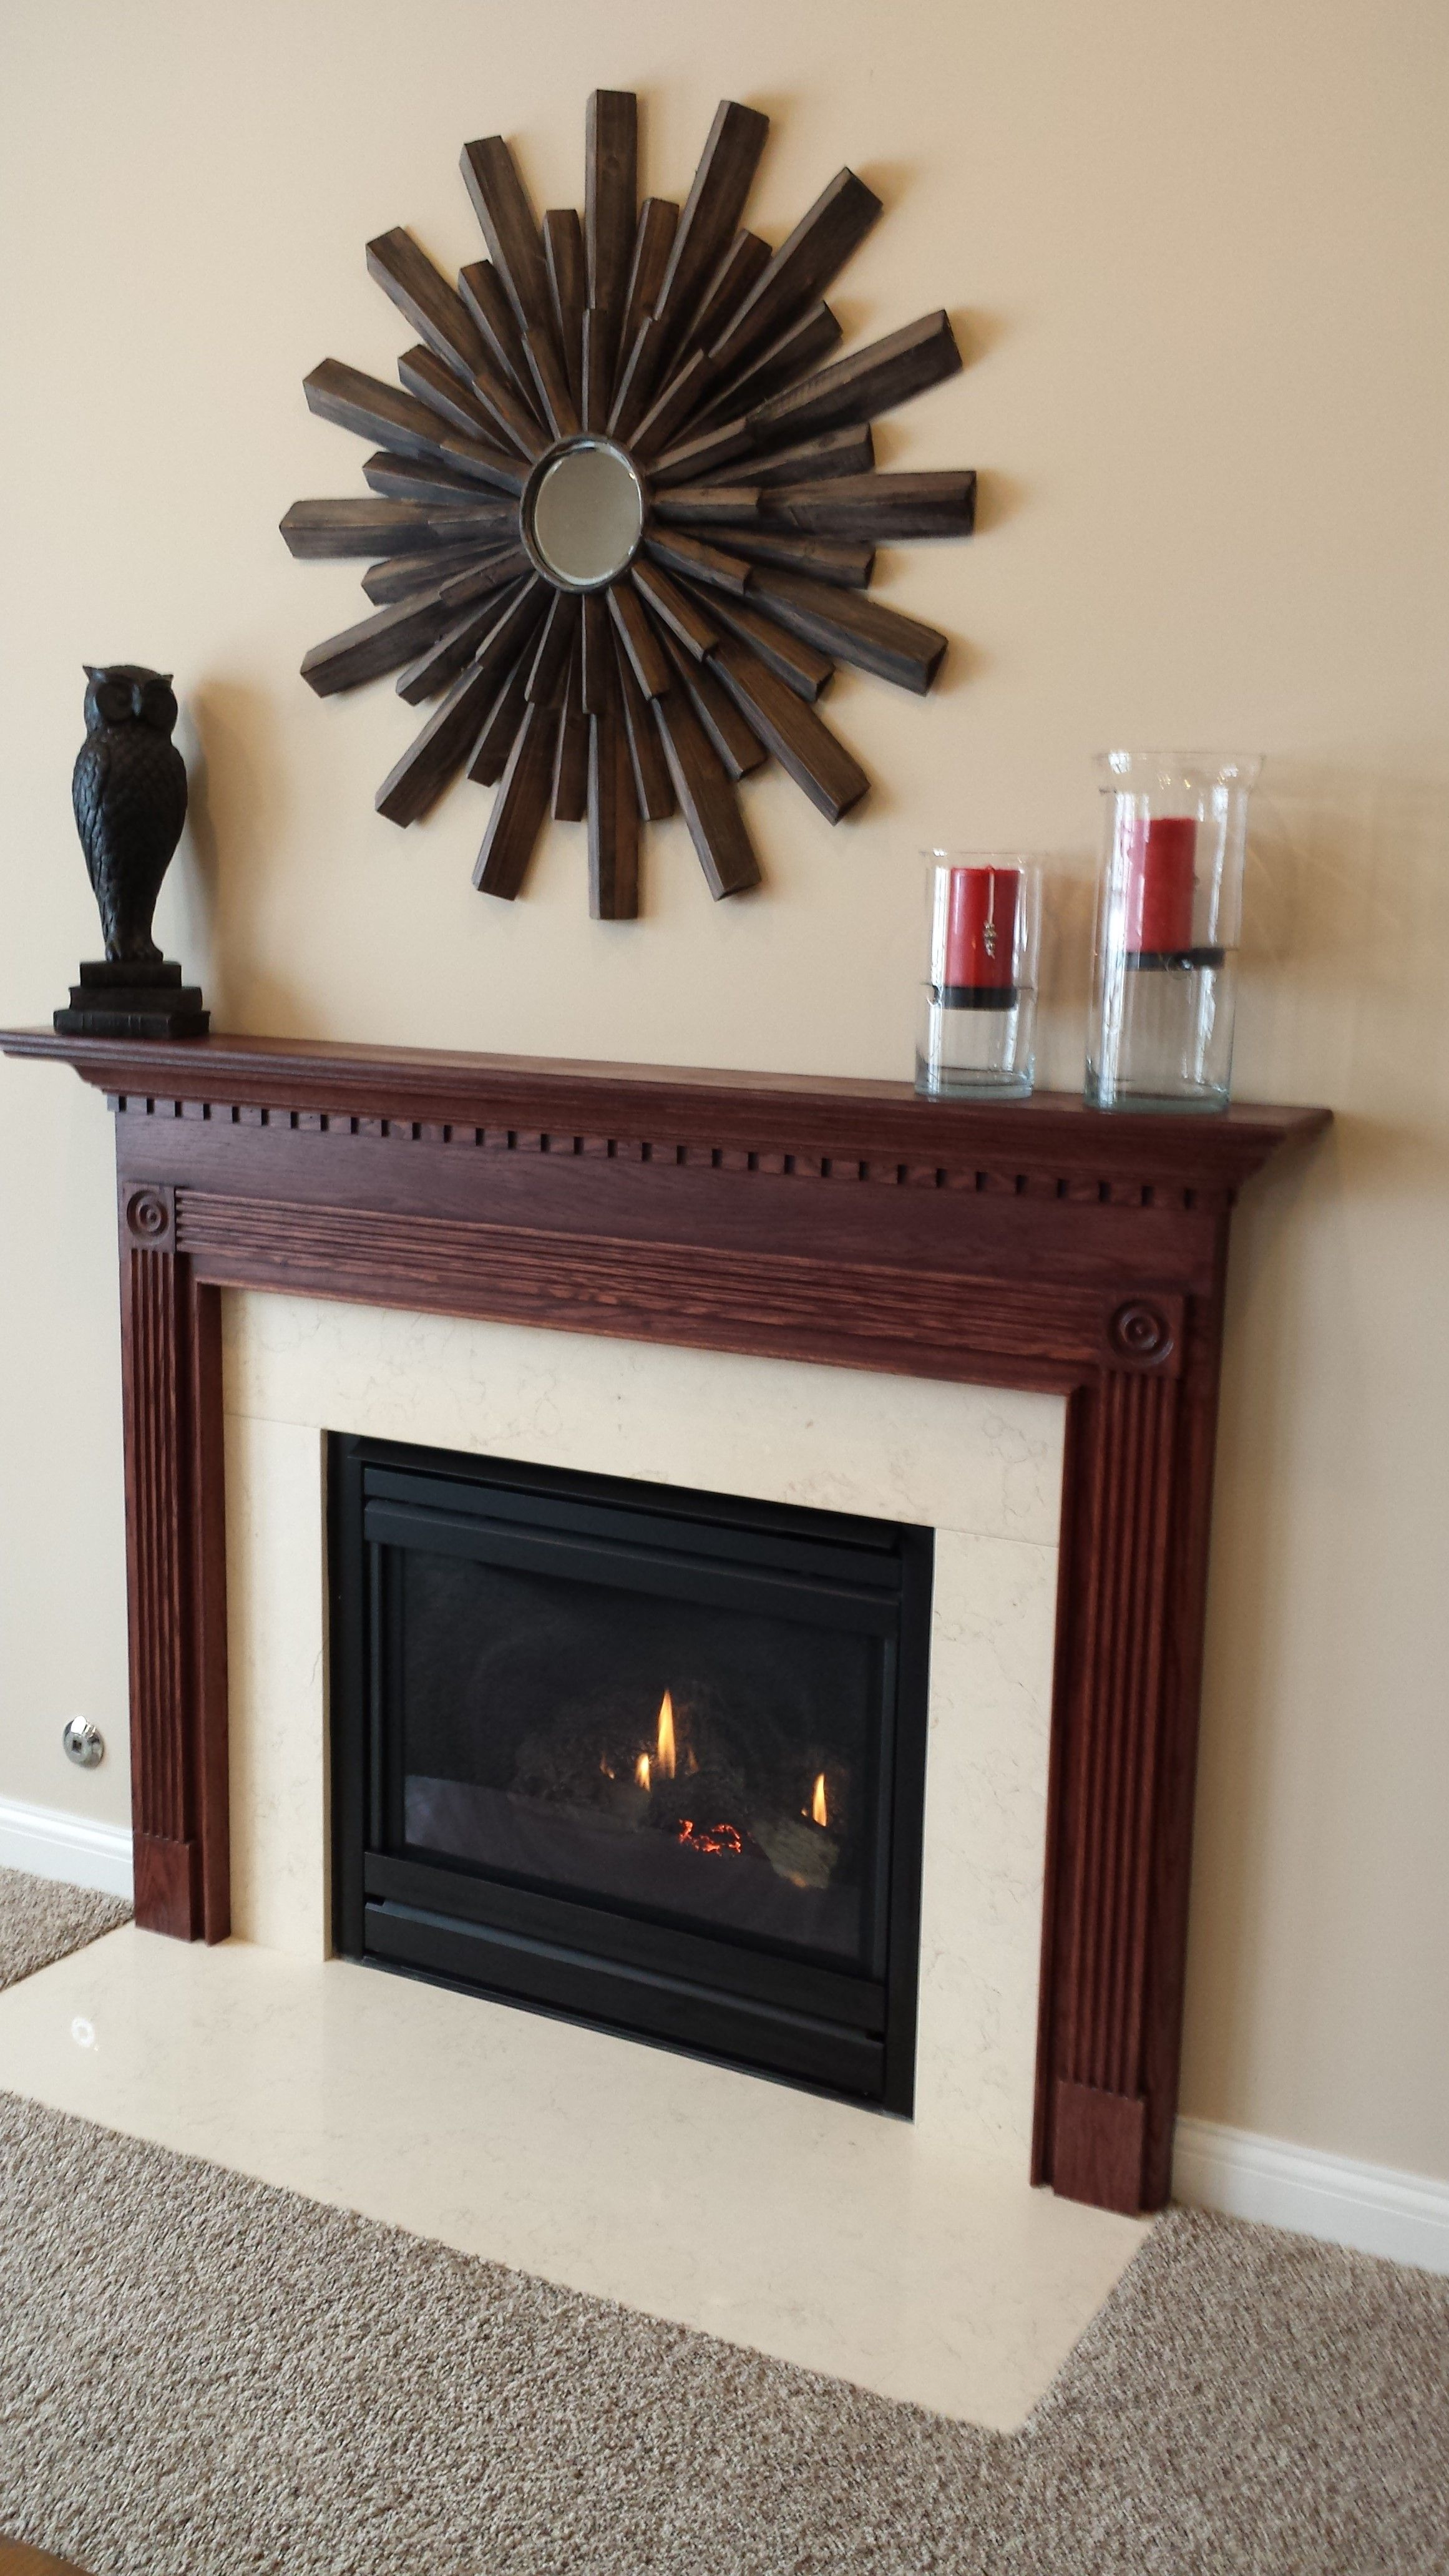 like the low fireplace and the thick wood mantel with trim all the